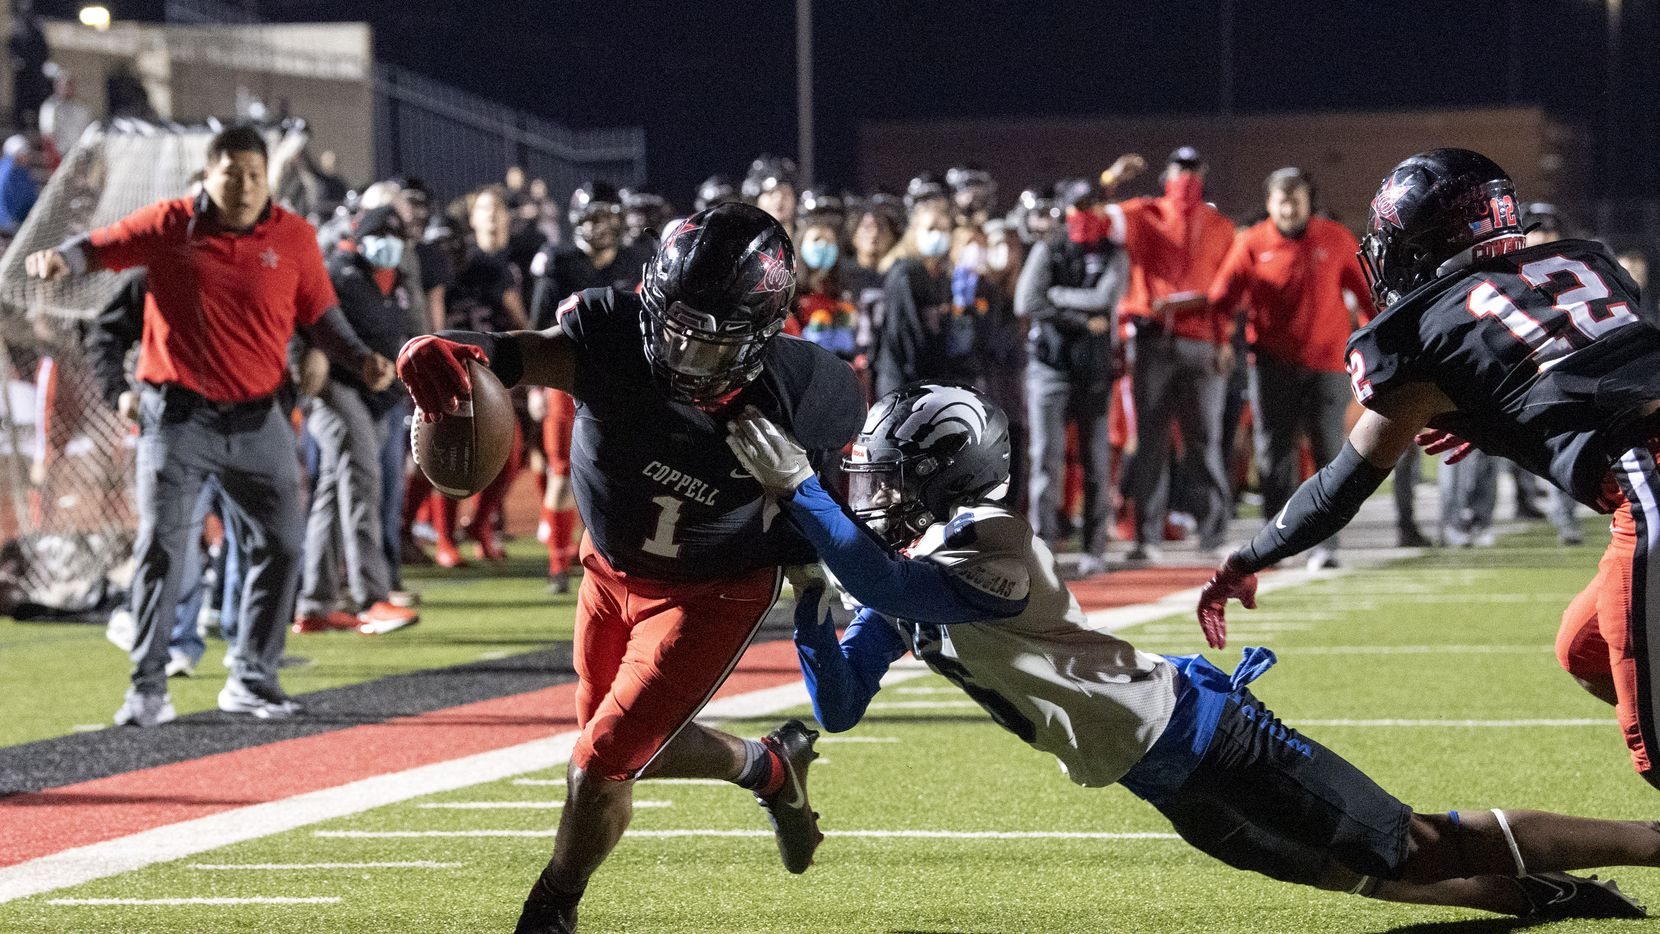 Coppell senior wide receiver KJ Liggins (1) fights through the tackle of Plano West senior linebacker Arwin Sino (6) to score the go-ahead touchdown in the fourth quarter of a high school football game on Friday, October 30, 2020 at Buddy Echols Field in Coppell, Texas. Coppell won 31-20.